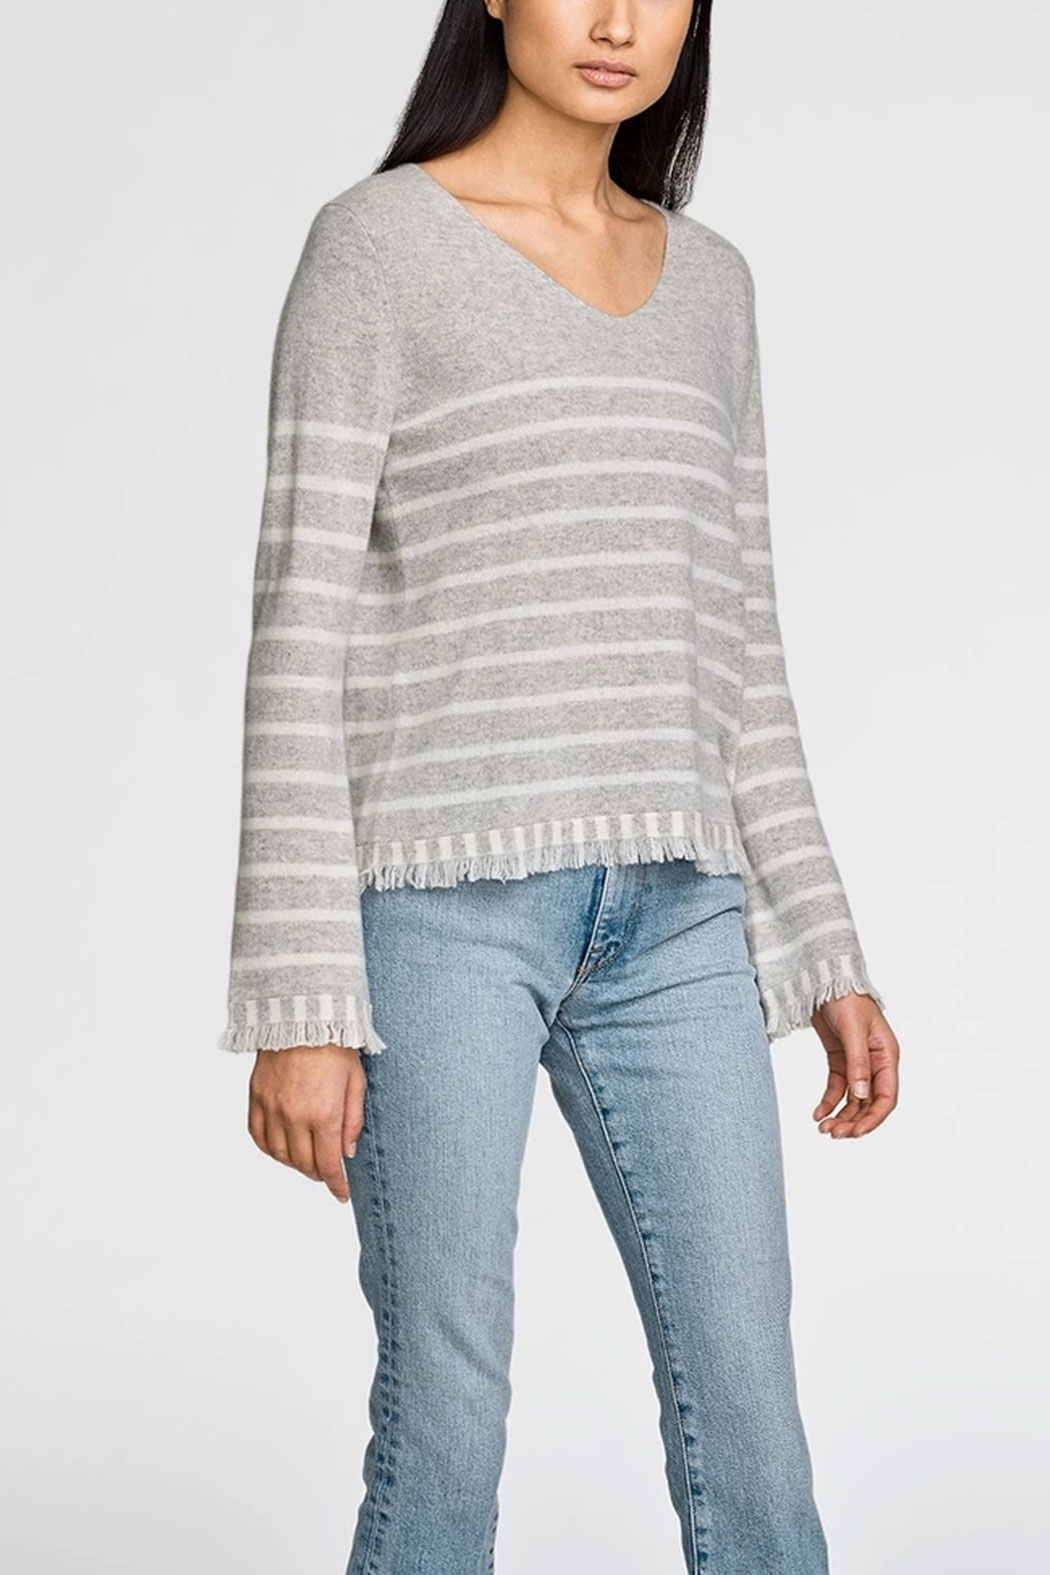 White + Warren Striped Fringe V-Neck Sweater - Front Cropped Image